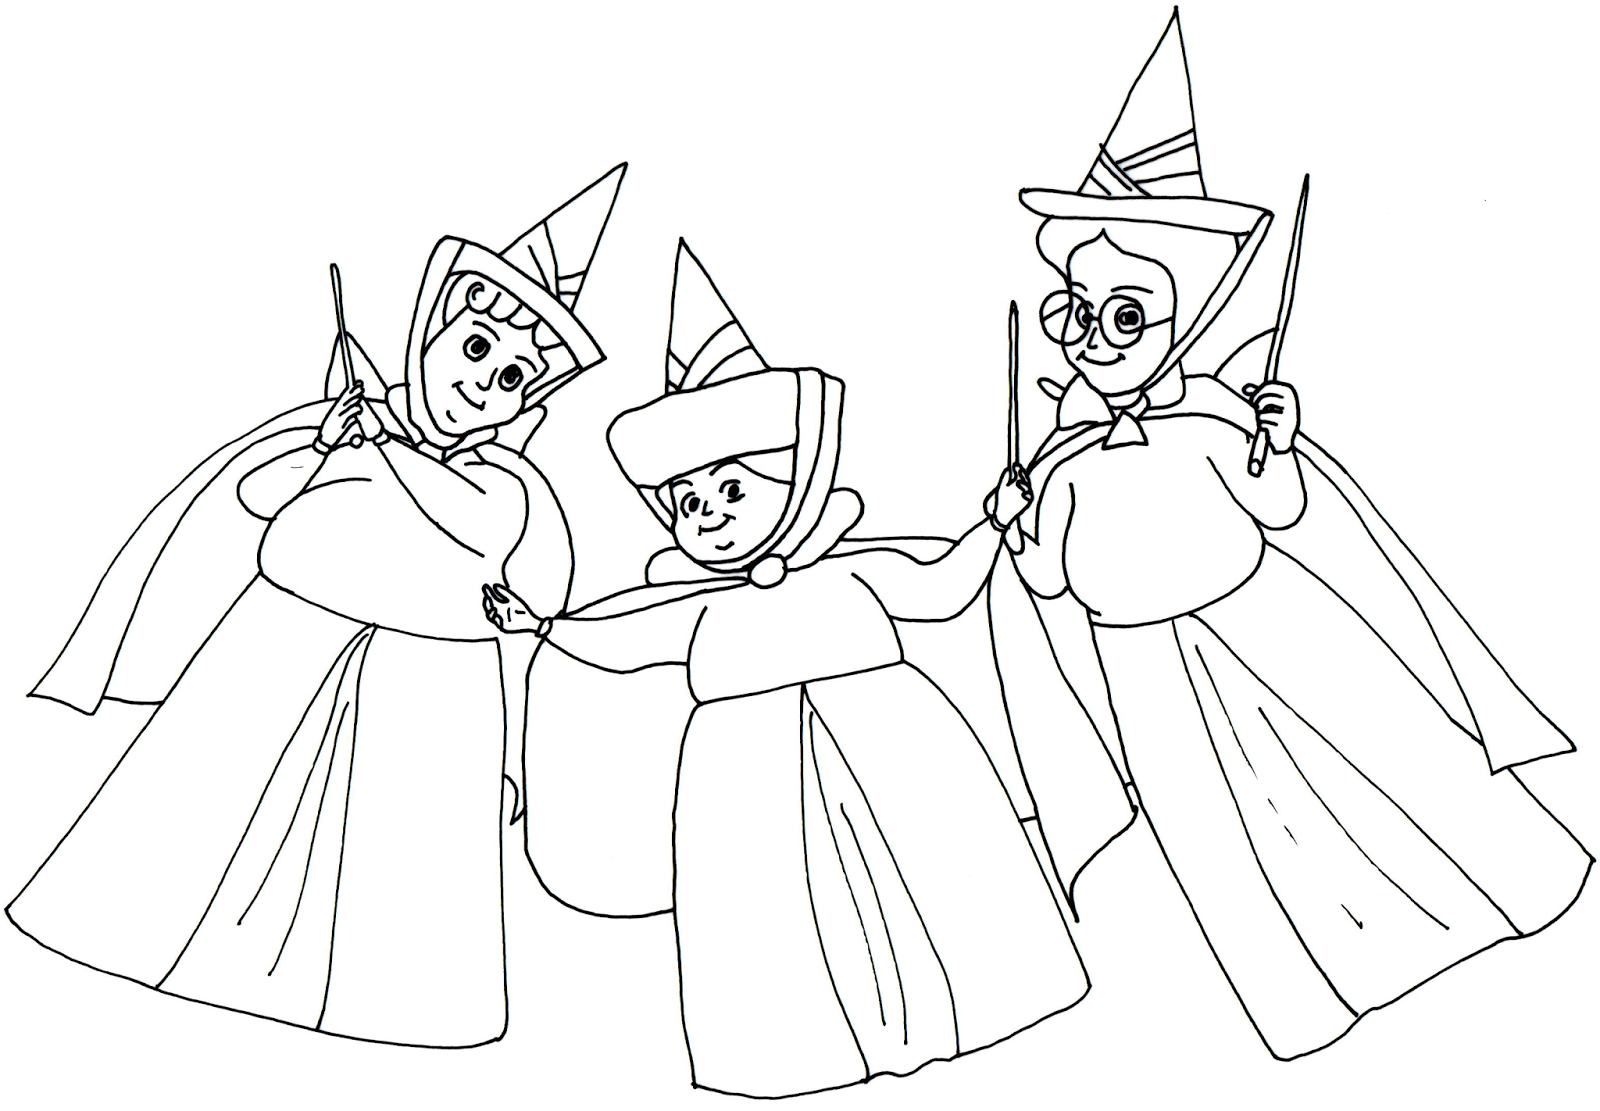 Sofia The First Coloring Pages Headmistresses at Royal Prep Sofia